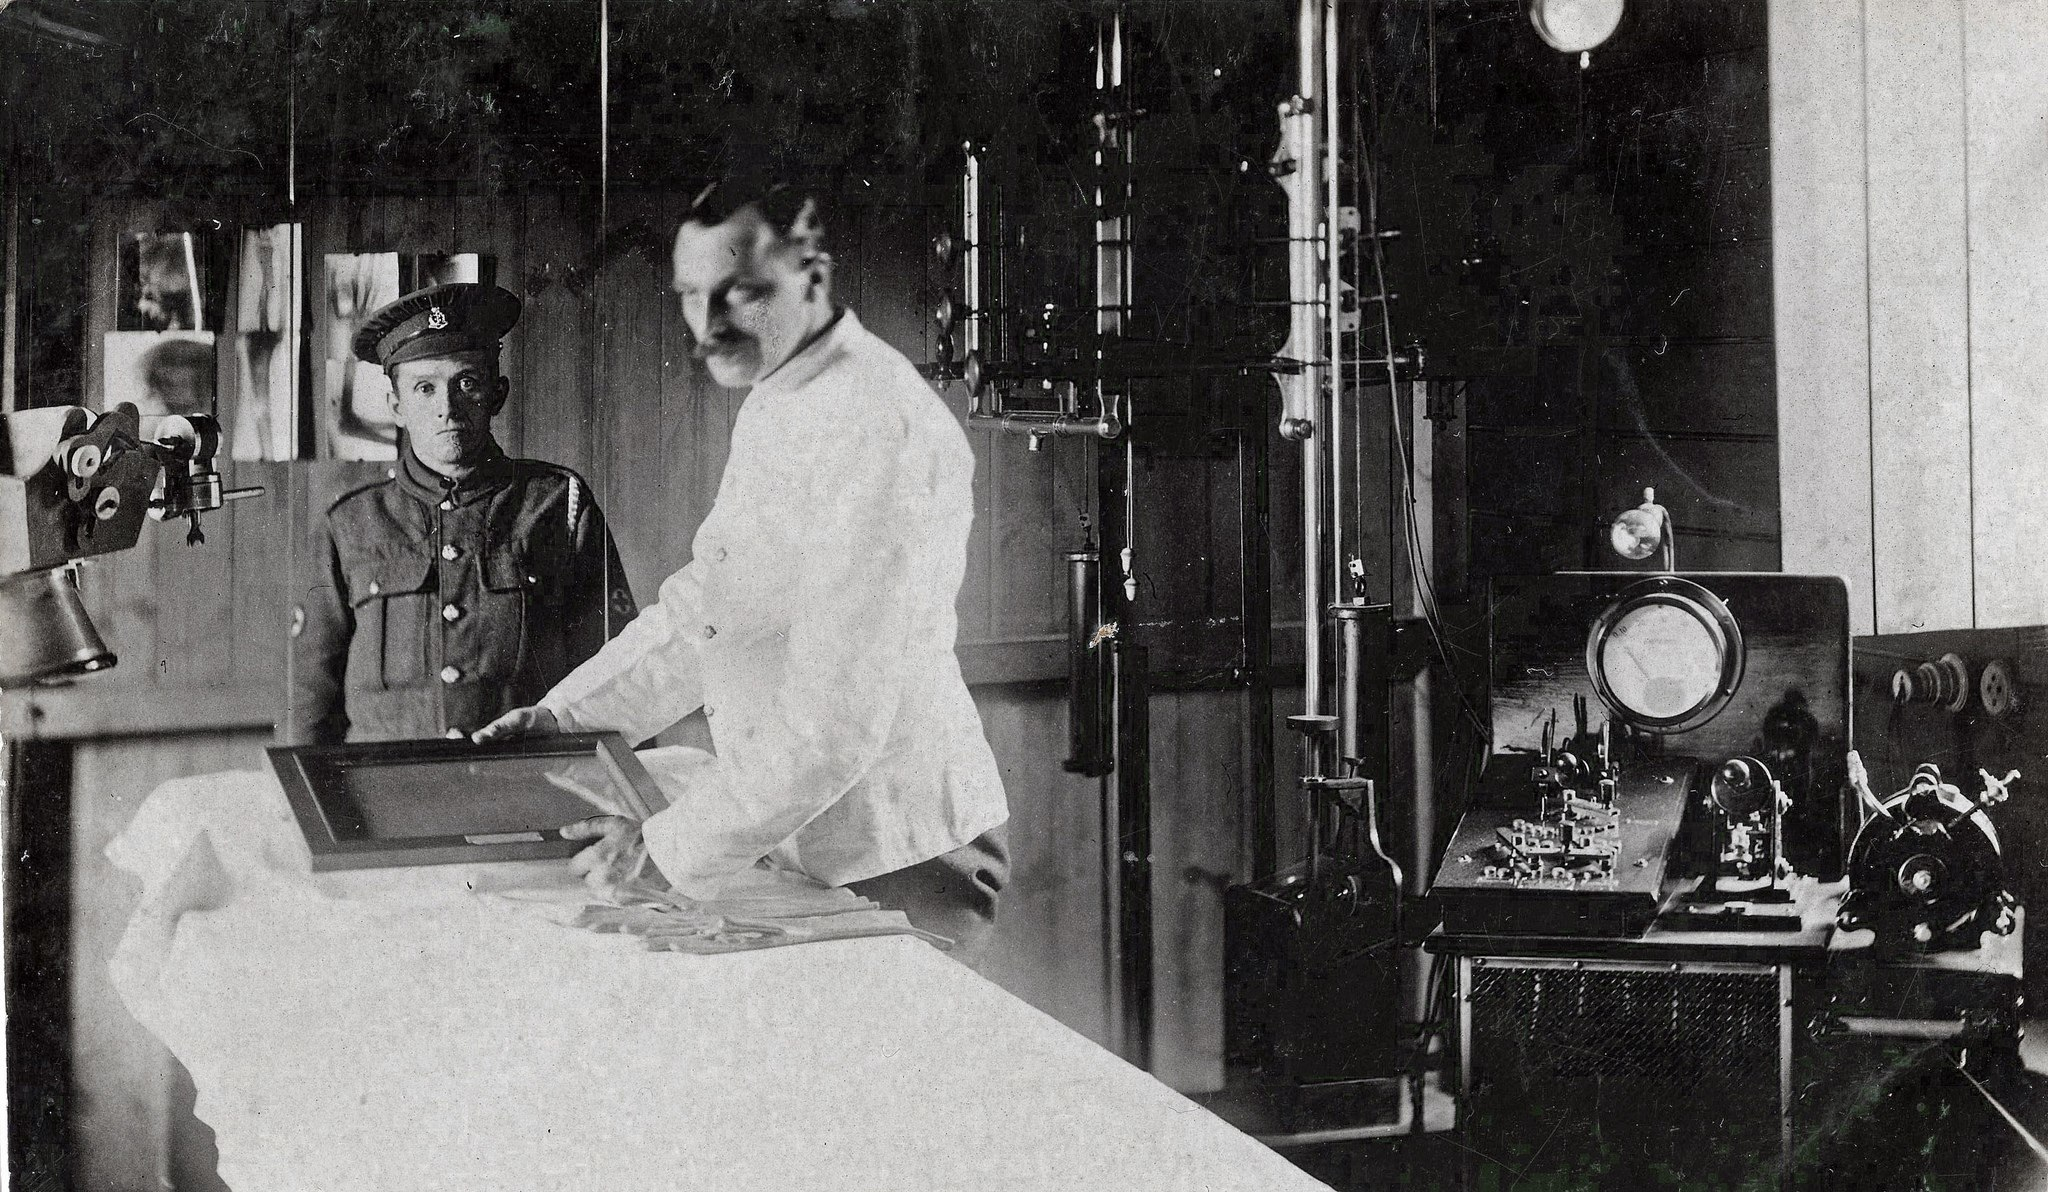 Kitchener Hospital, with Corporal Patterson and Private Foster, May 1916 x-ray room, Brighton.